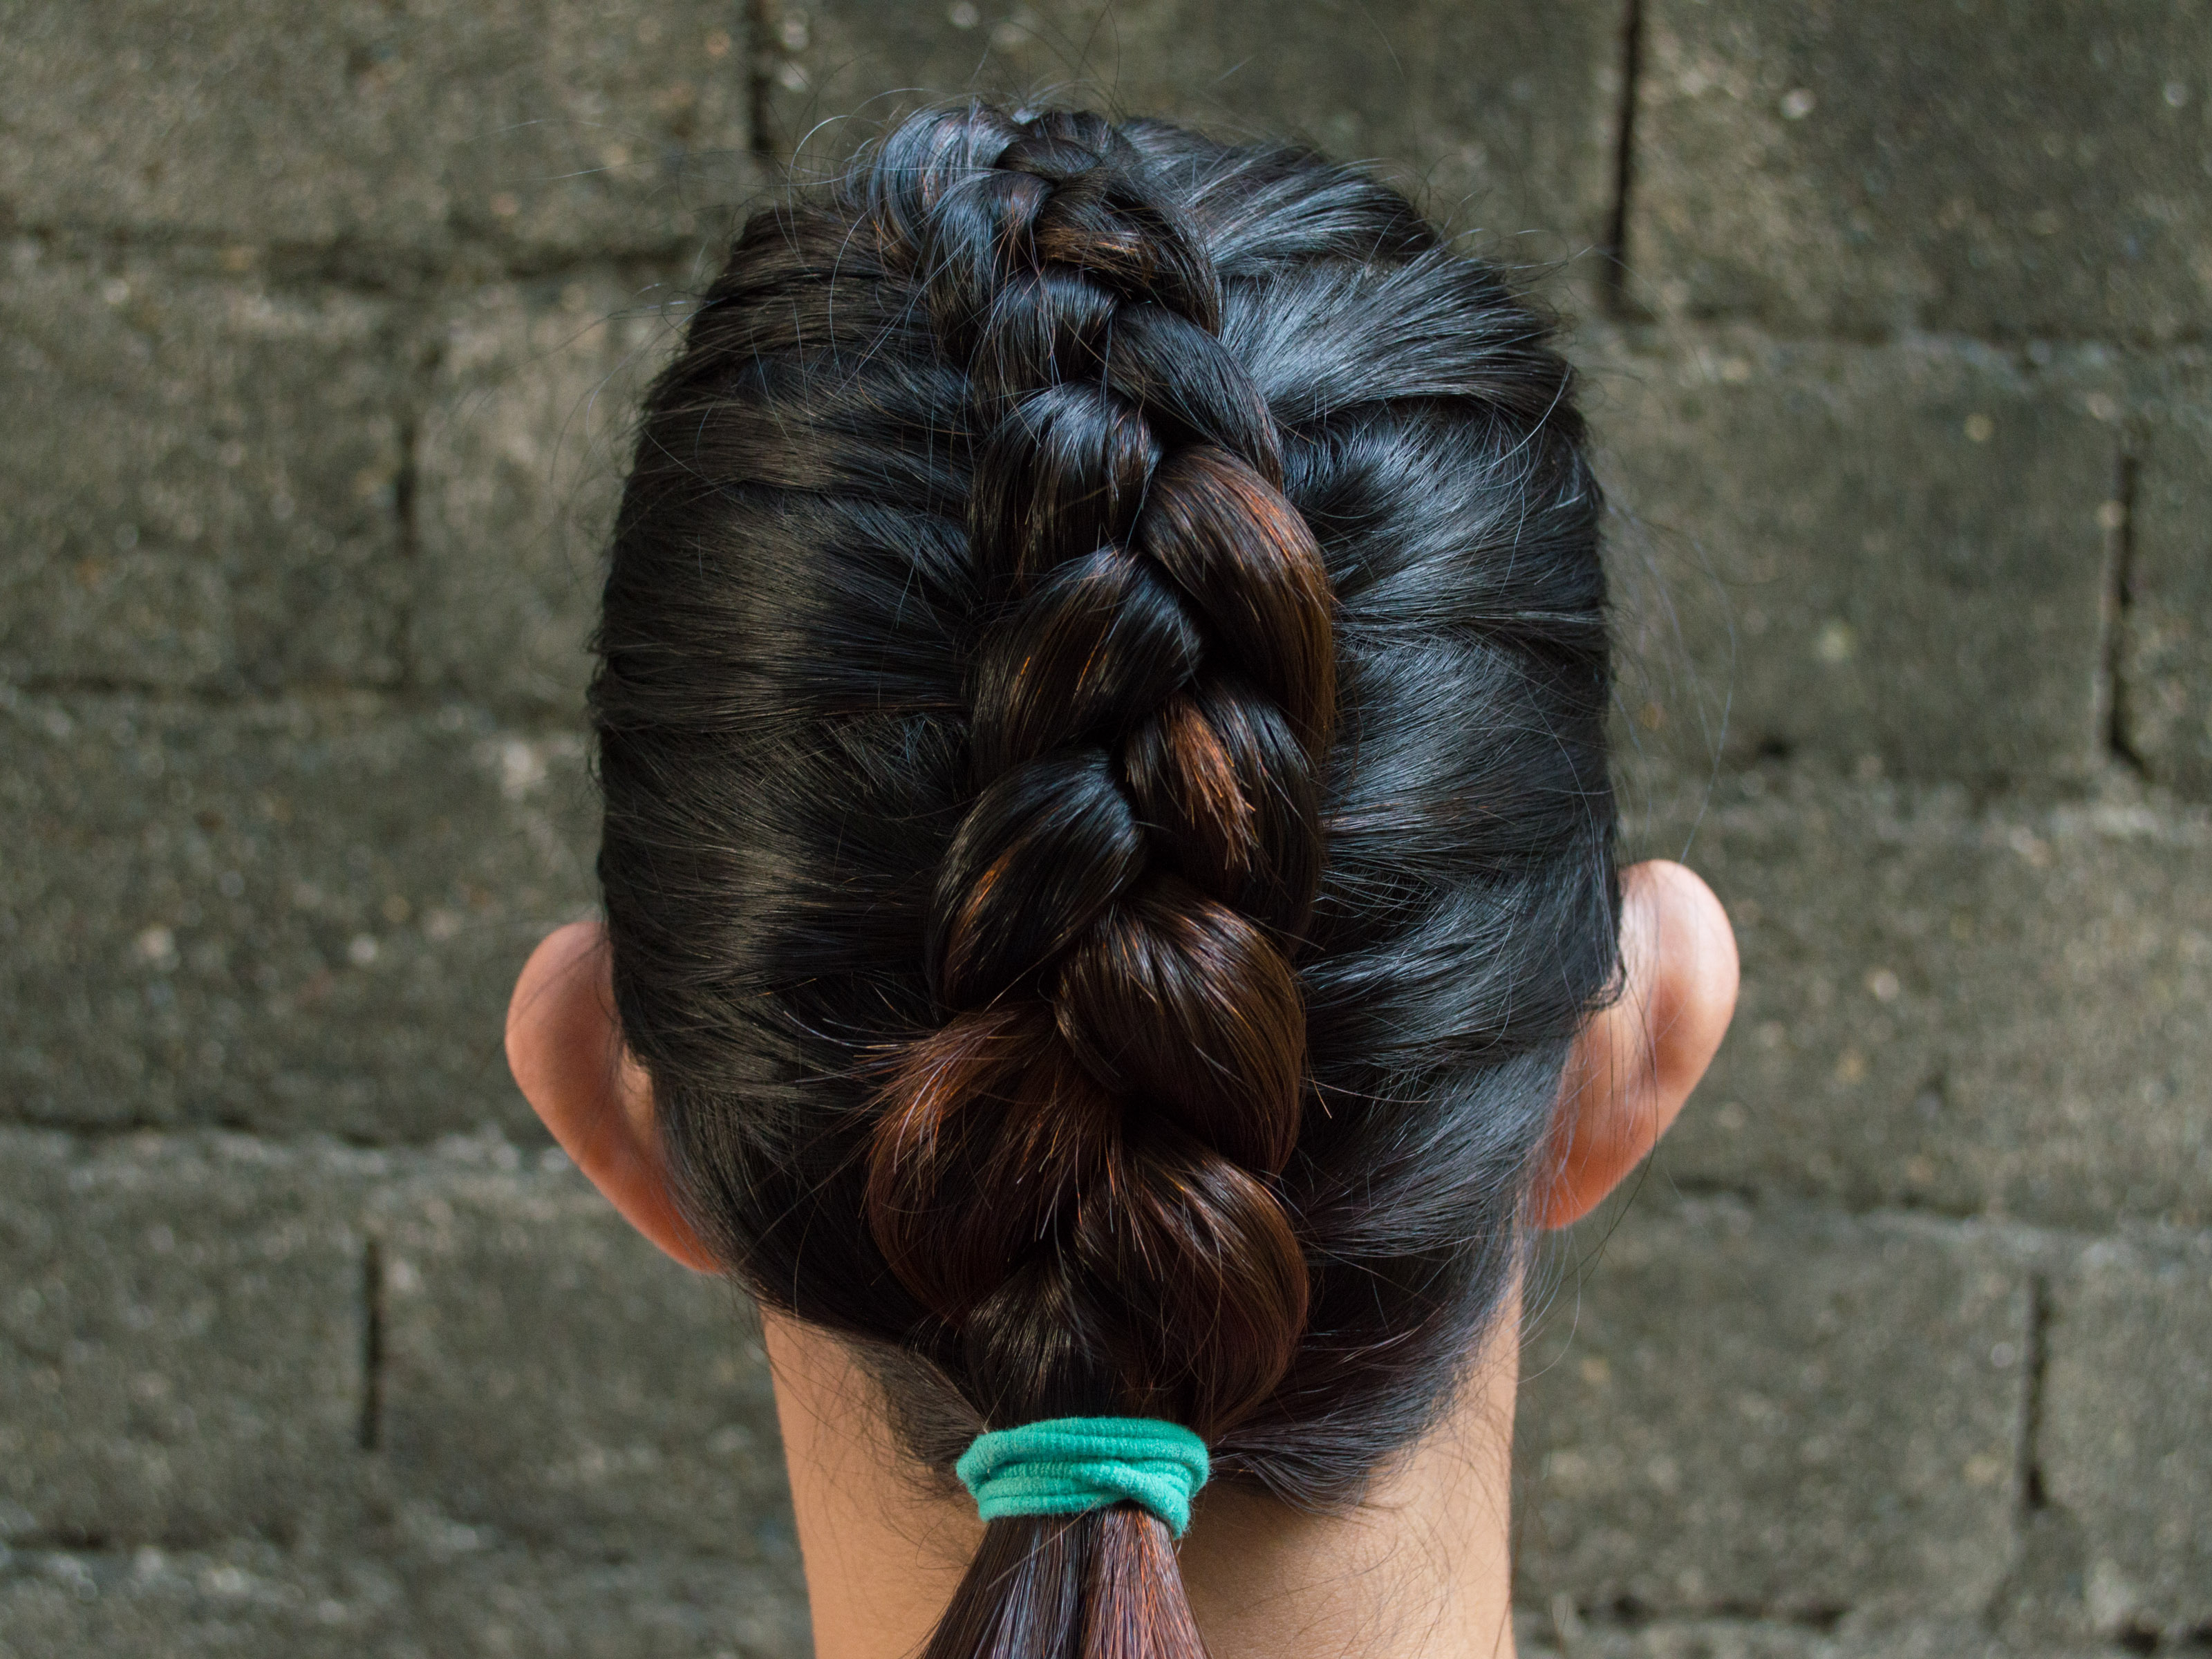 Preferred Red Inward Under Braid Hairstyles Pertaining To How To Do A Reverse French Braid: 6 Steps (with Pictures) (Gallery 6 of 20)